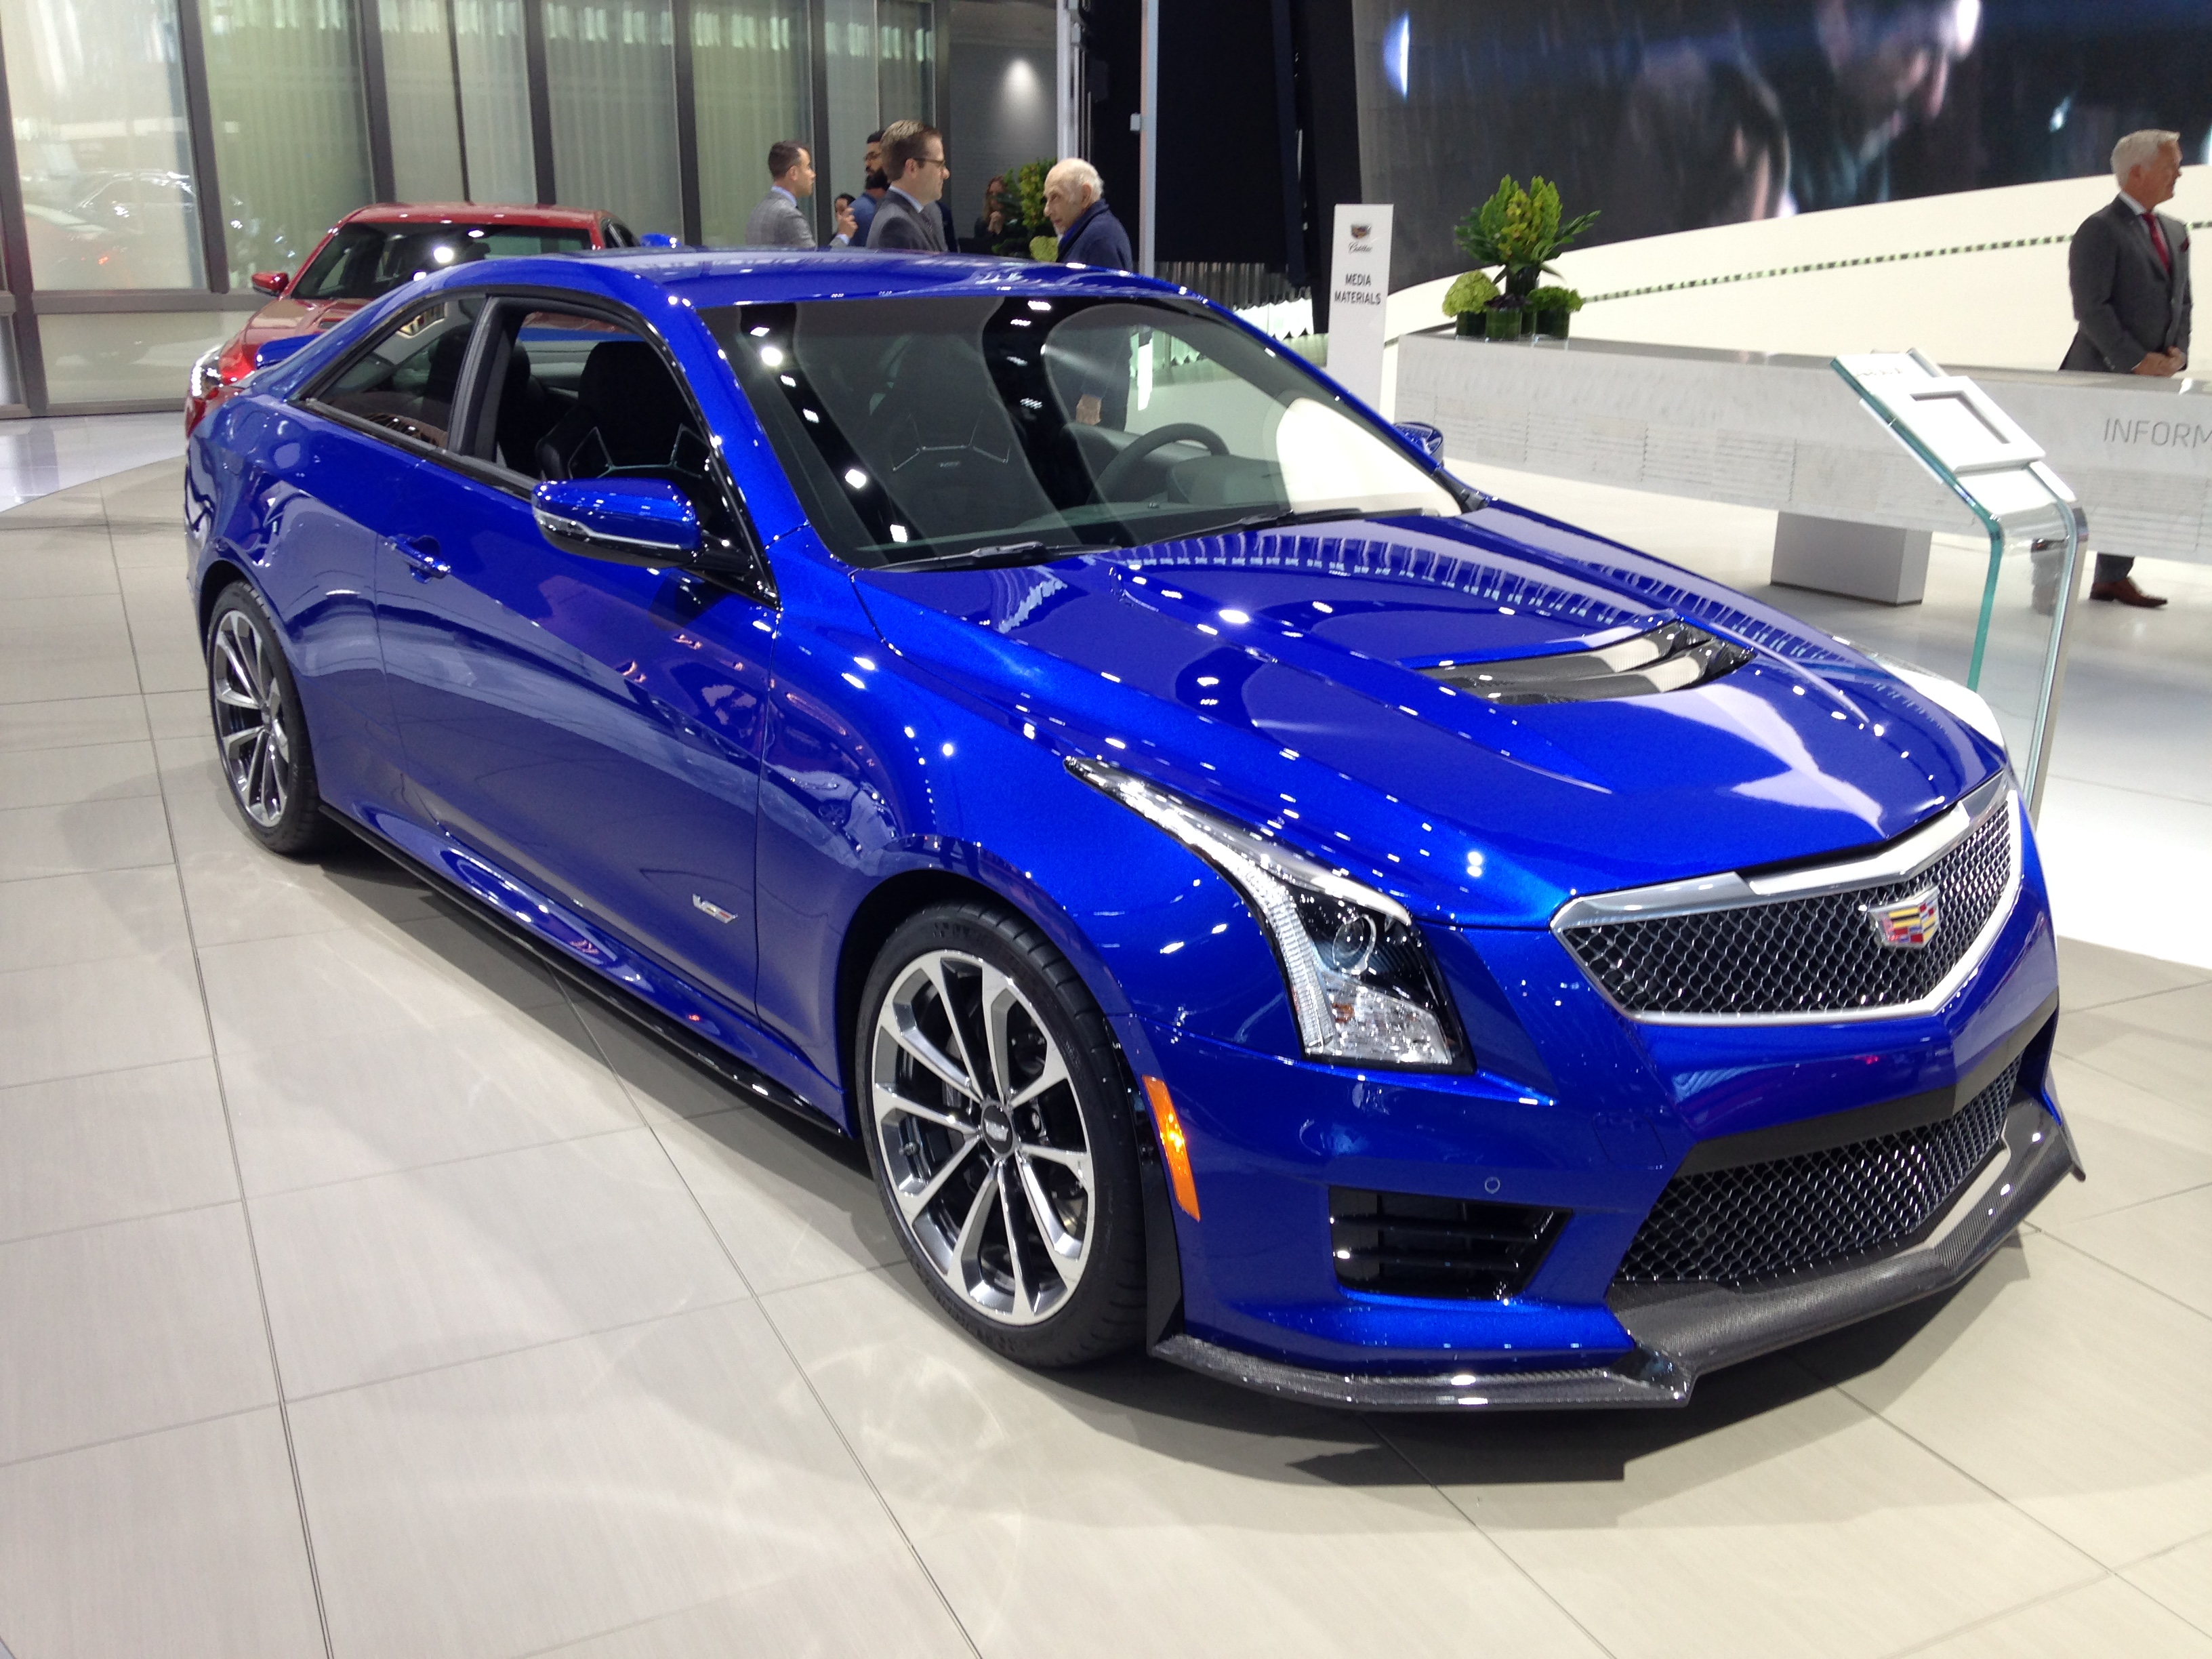 2018 Cts V Coupe New Car Release Date And Review 2018 Amanda Felicia